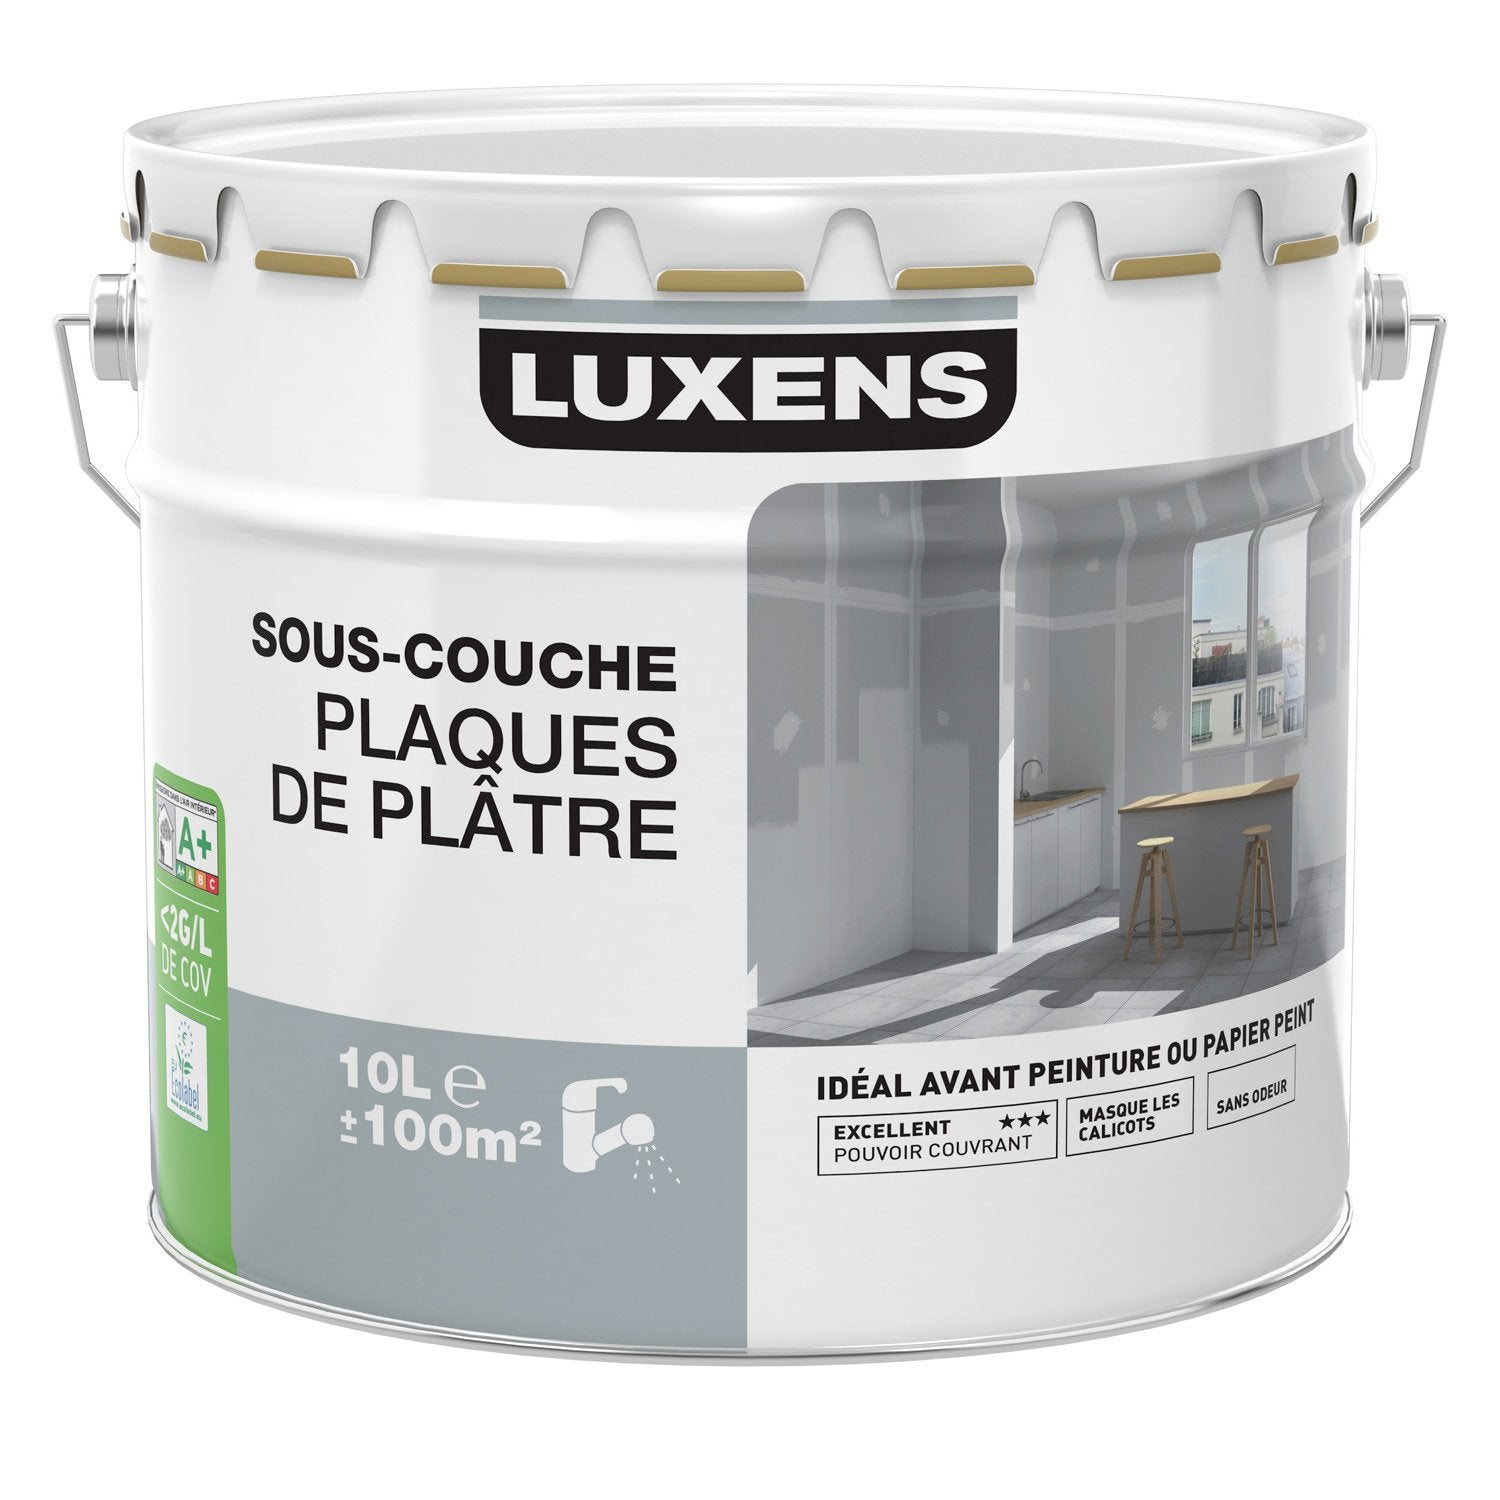 sous couche plaque de pl tre luxens 10 l leroy merlin. Black Bedroom Furniture Sets. Home Design Ideas